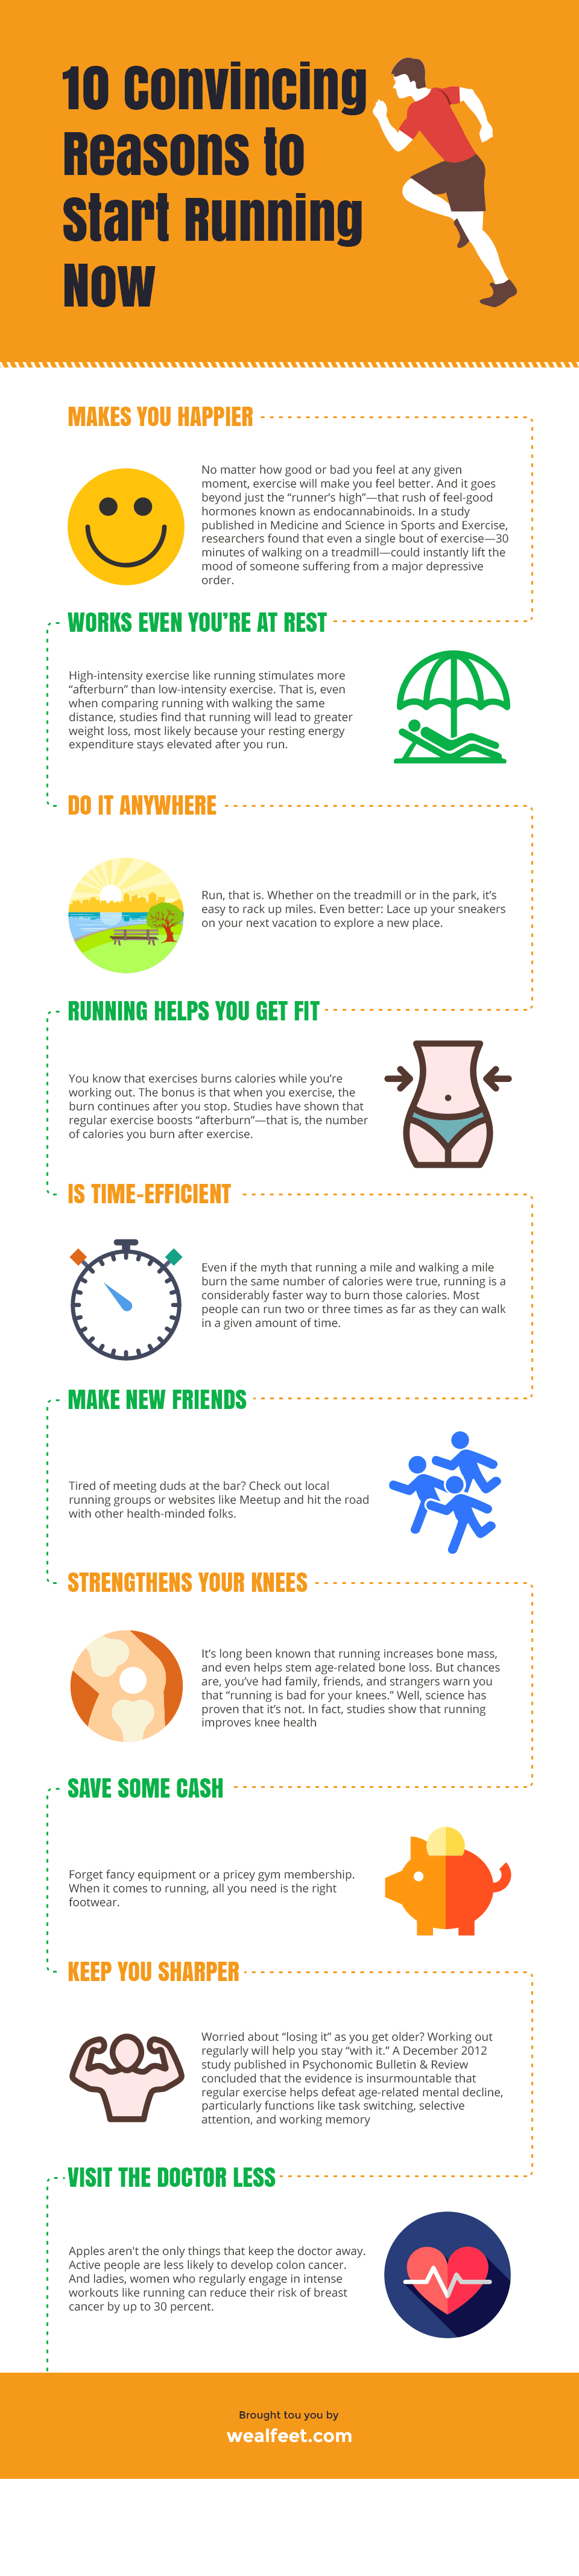 10 convincing reasons to start running now